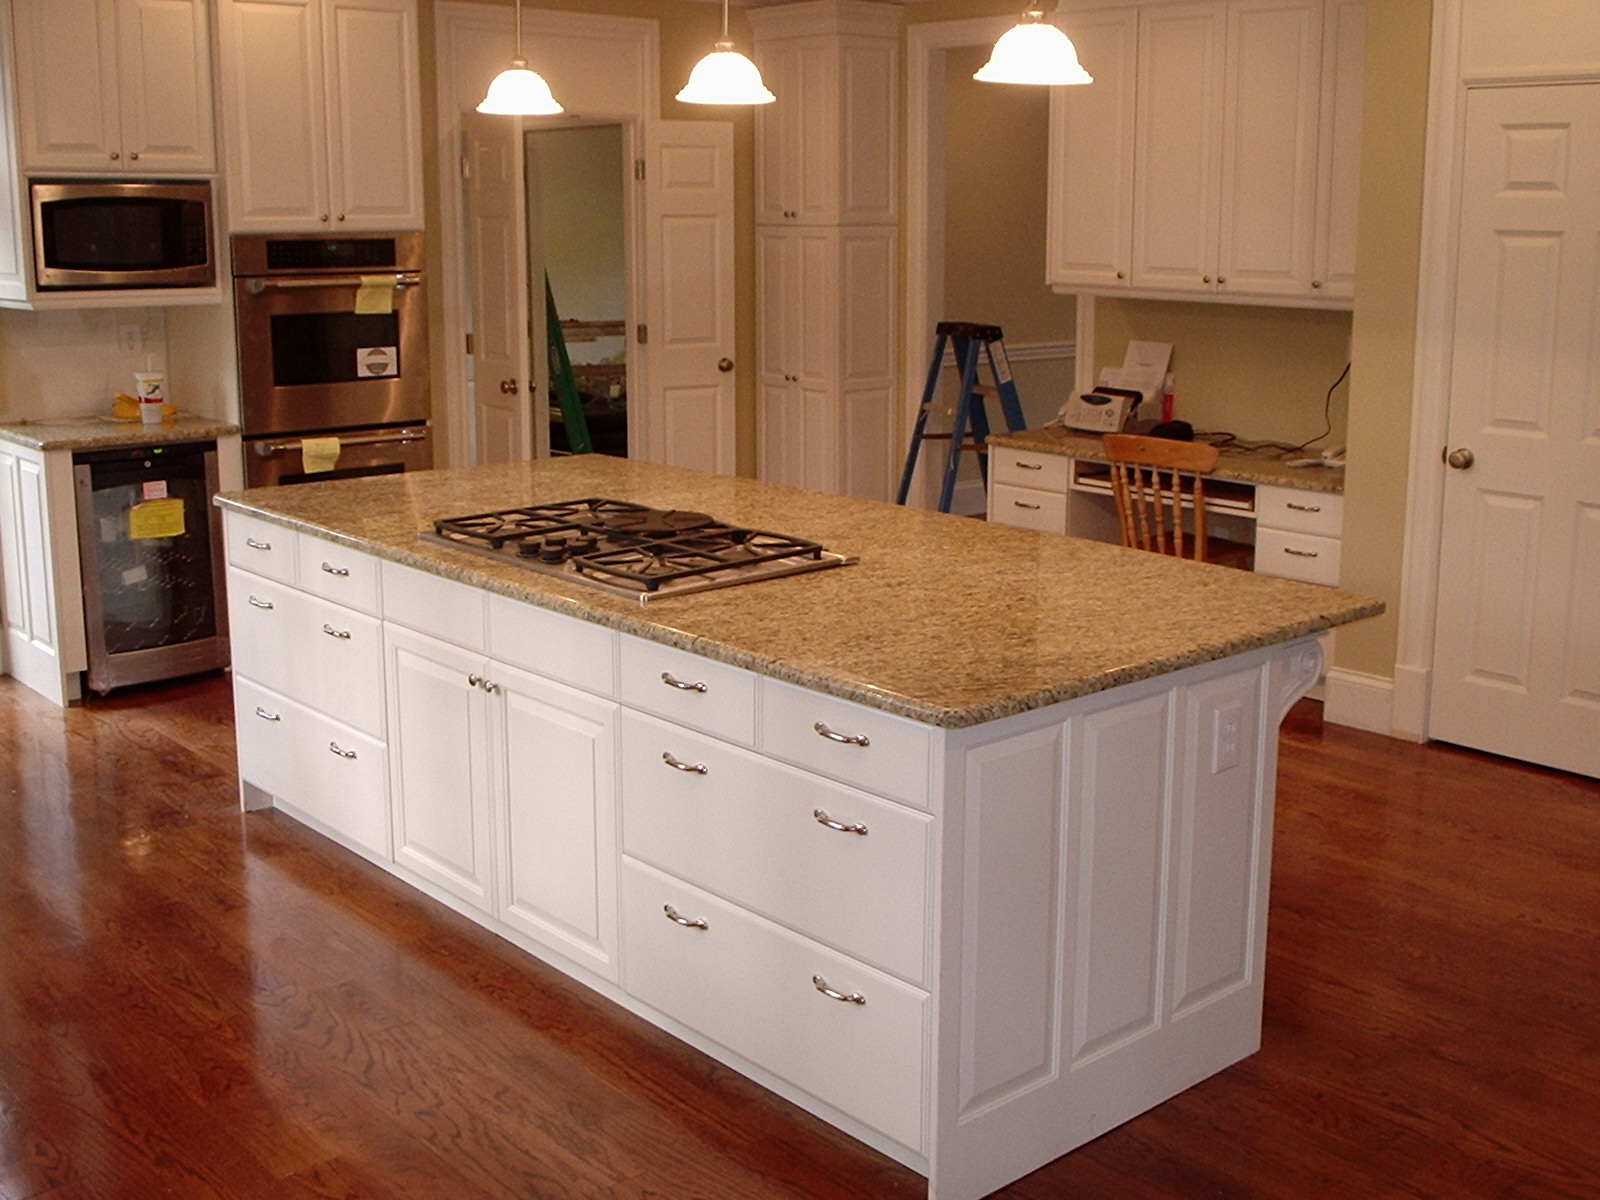 Kitchen cabinet plans dream house experience for Kitchen cabinet plans